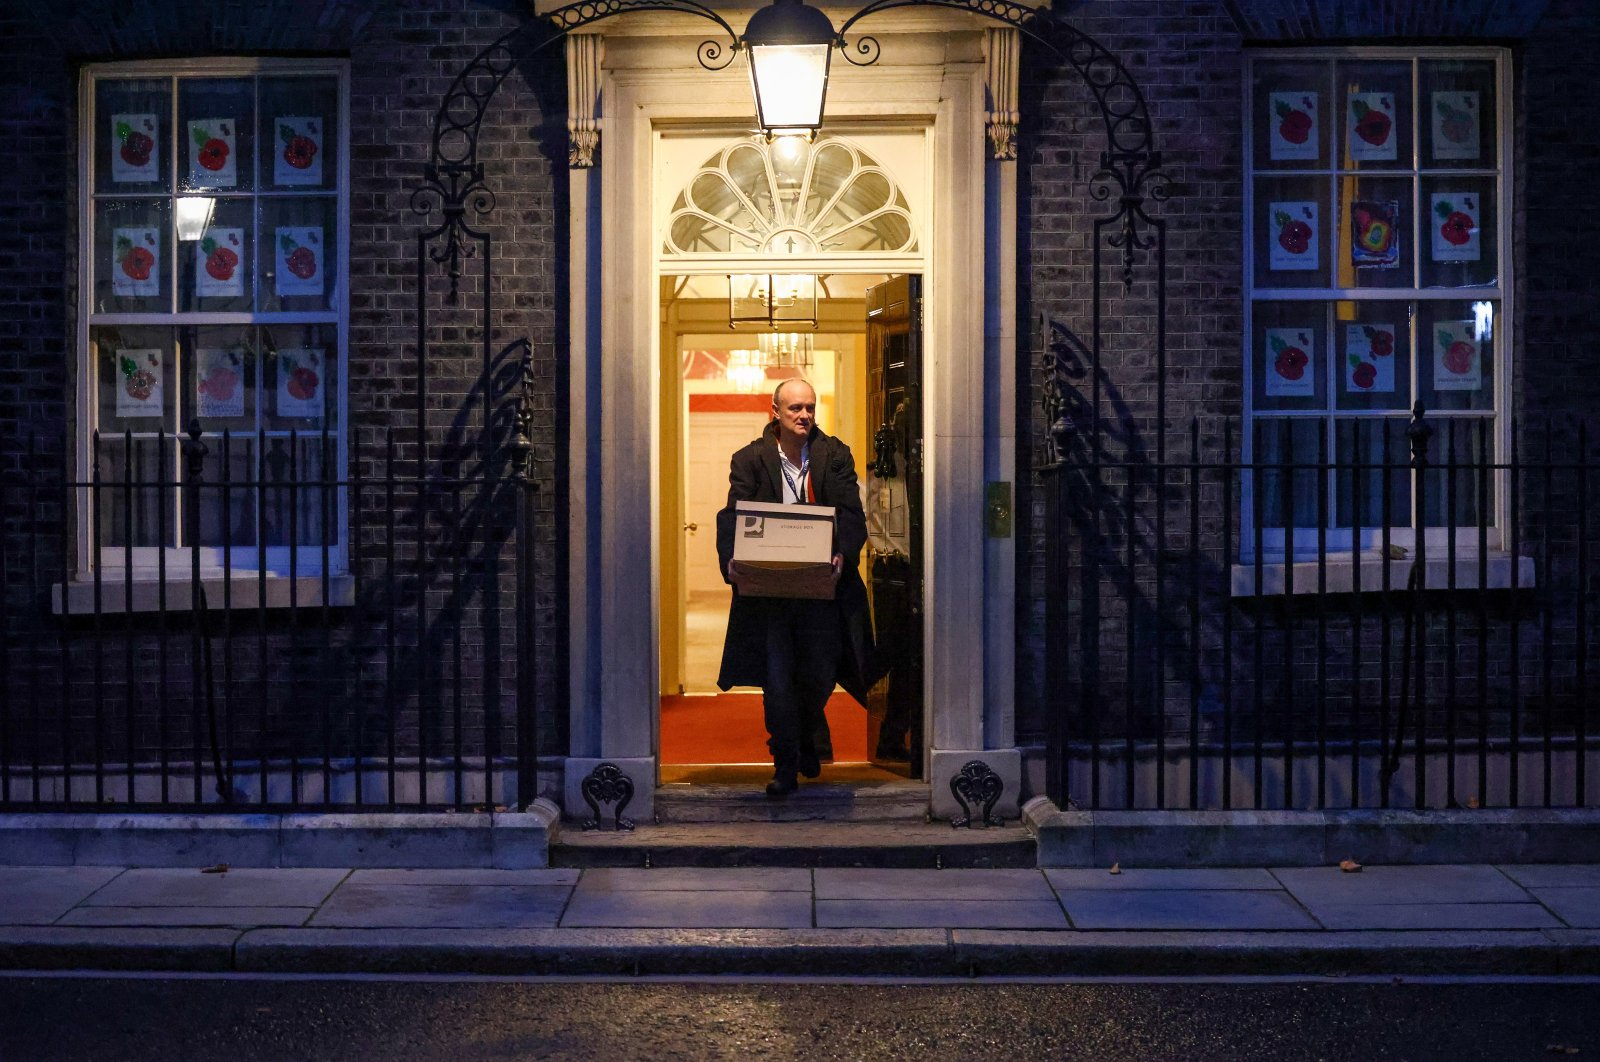 Dominic Cummings, special advisor for U.K. Prime Minister Boris Johnson, leaves 10 Downing Street, in London, Britain, Nov. 13, 2020. (Reuters Photo)